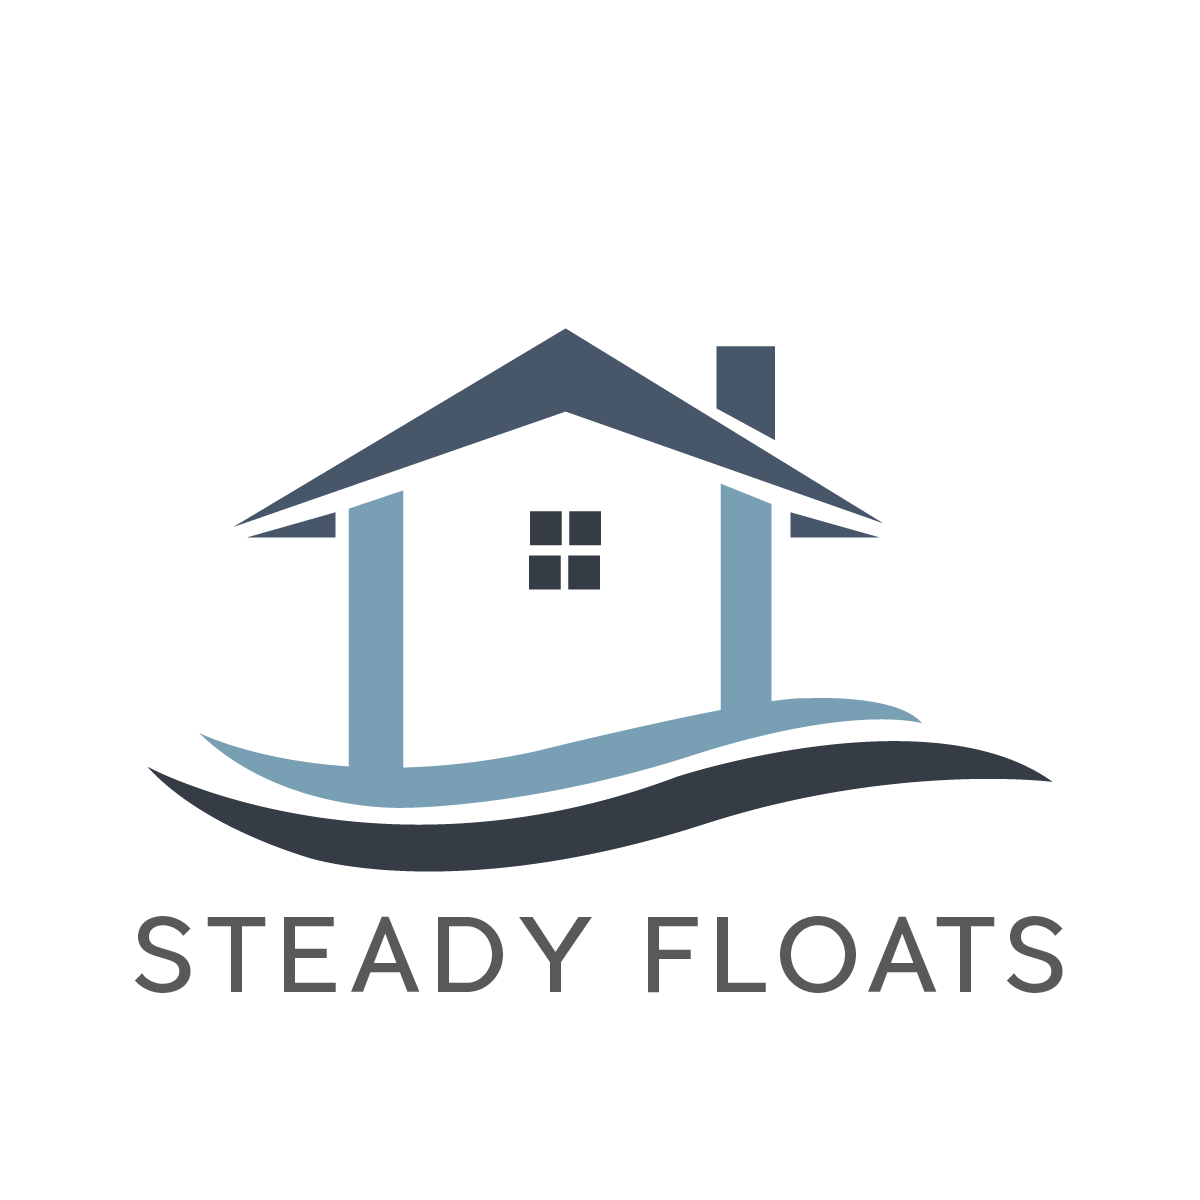 Steady Floats